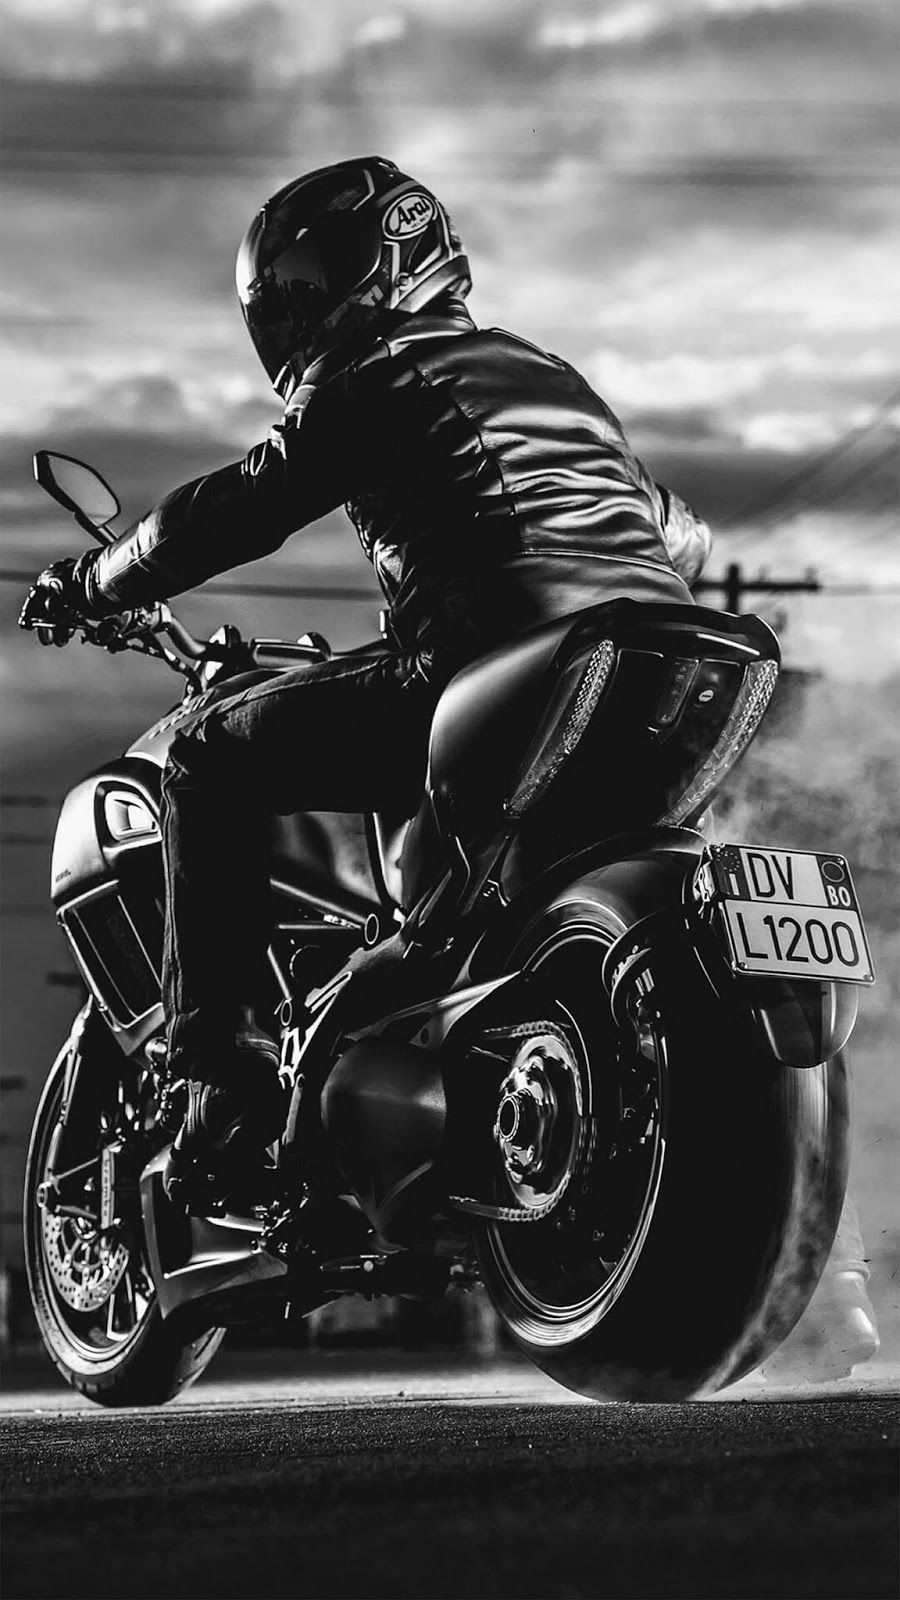 Pixabay Motorcycle Photography Motorcycle Wallpaper Motorcycle